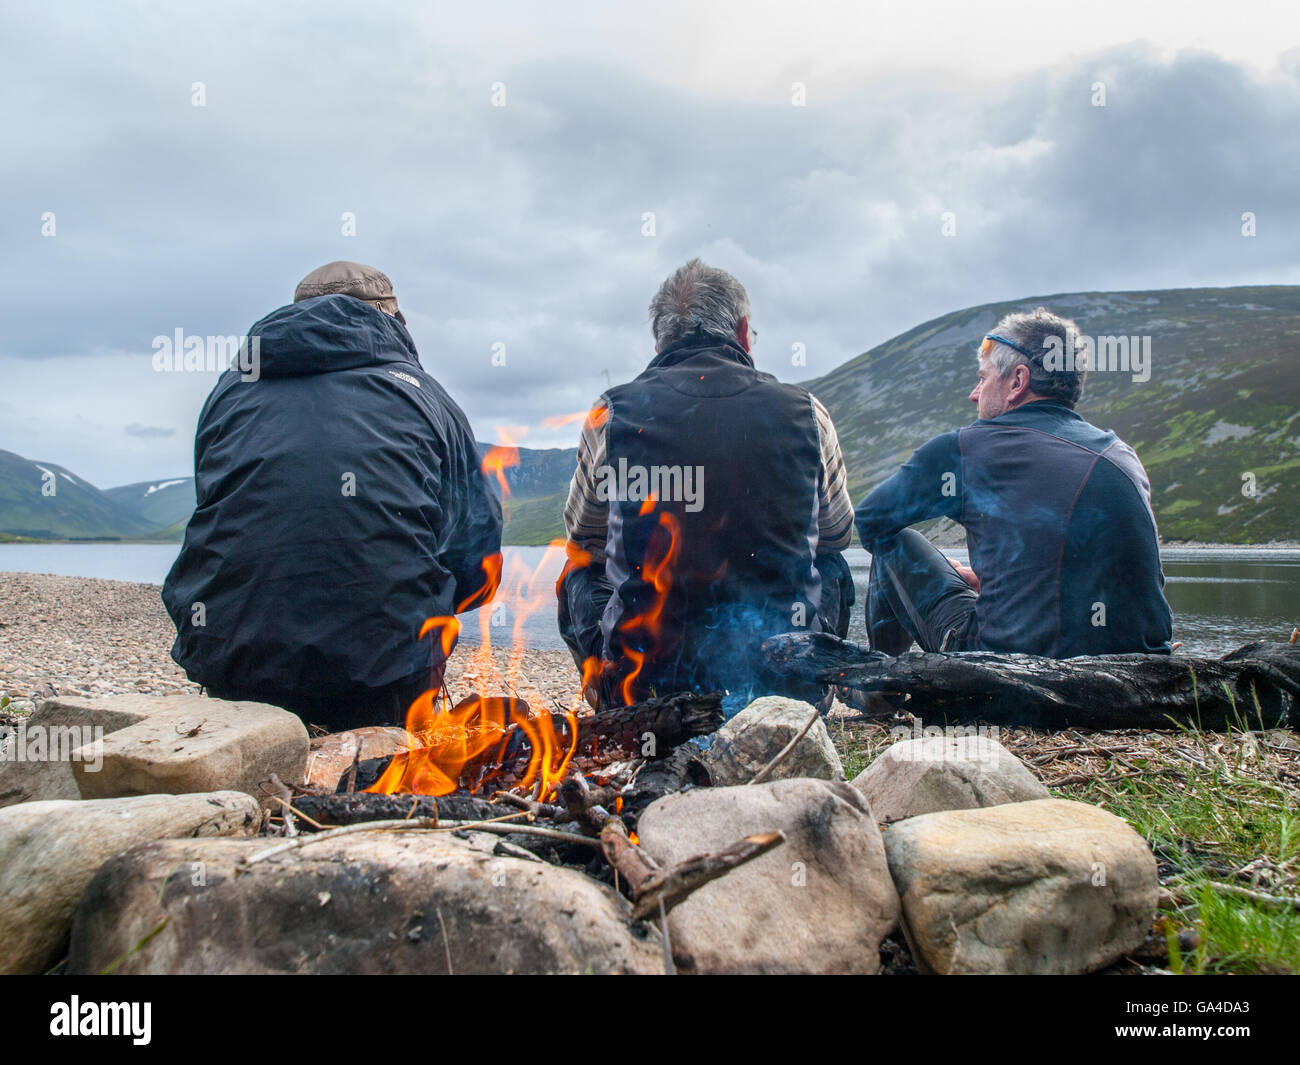 Three men with their backs to a camp fire on a bike-packing trip in Scotland - Stock Image